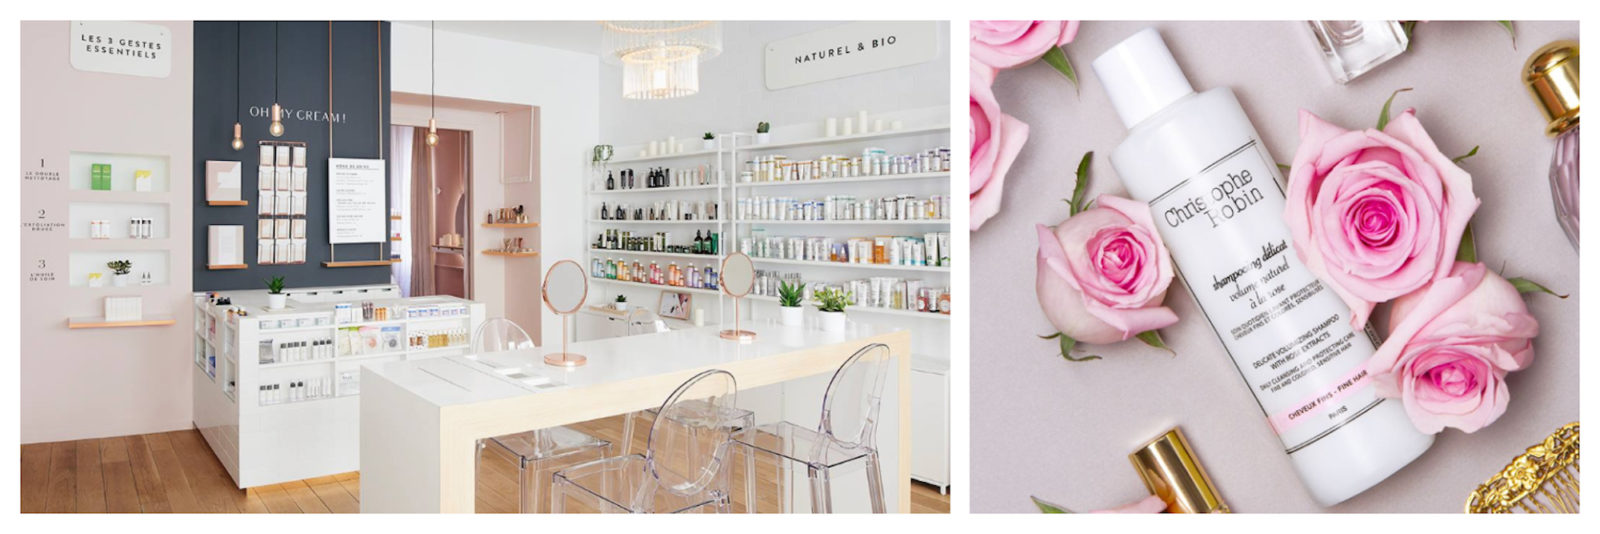 Oh My Cream! French beauty brand store interiors (left). French hair colorist Christophe Robin's beauty products top our list as they are natural and smell great, like this bottle of soft 'Shampooing délicat' (right).